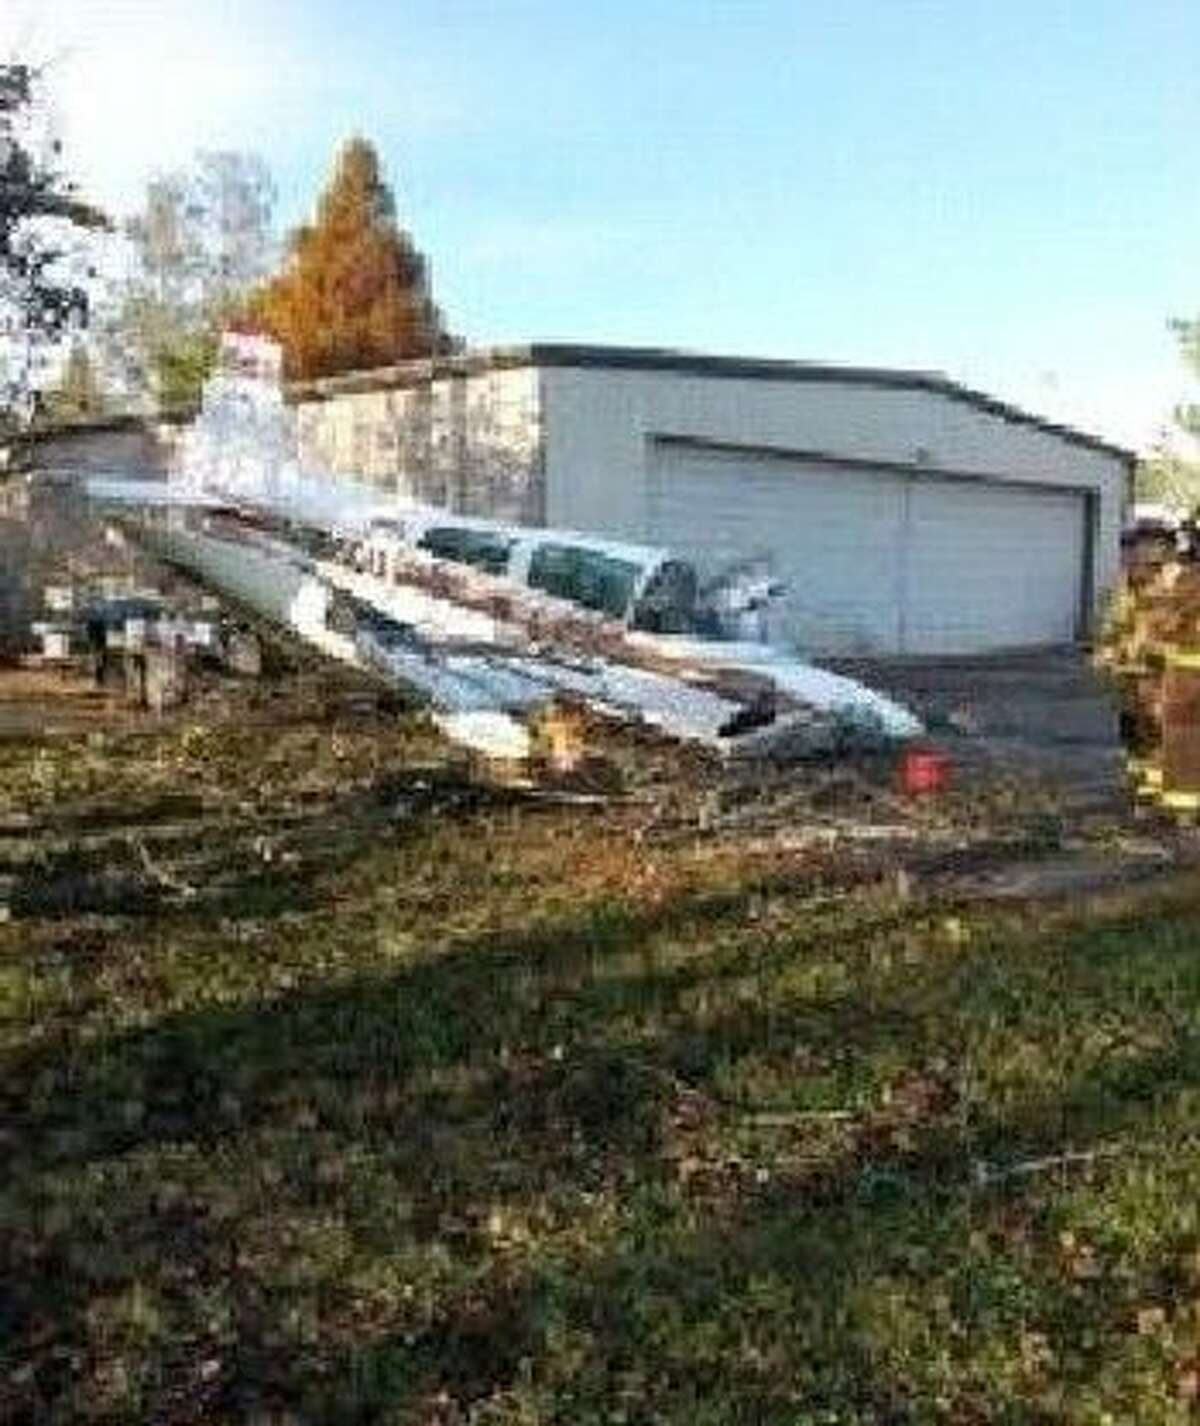 A small plane made a crash landing and ended up in the backyard of a Friendswood home Thursday (Dec. 17).